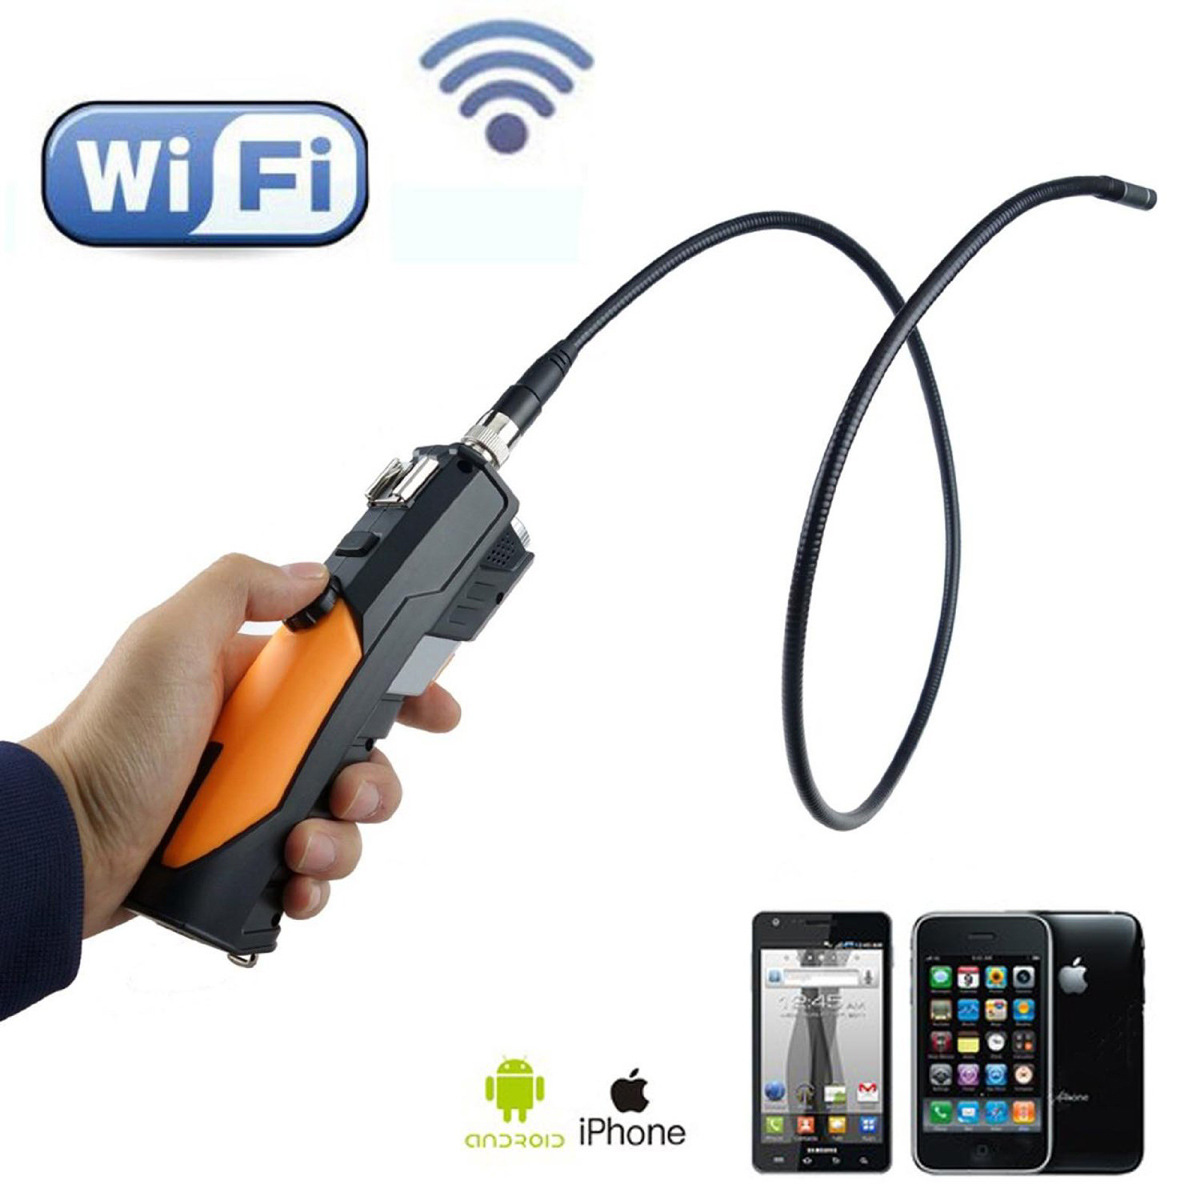 1 M El-held için WiFi HD720p Kablosuz Endoskop Video Borescope Kamera 4 ADET iOS Android Tablet